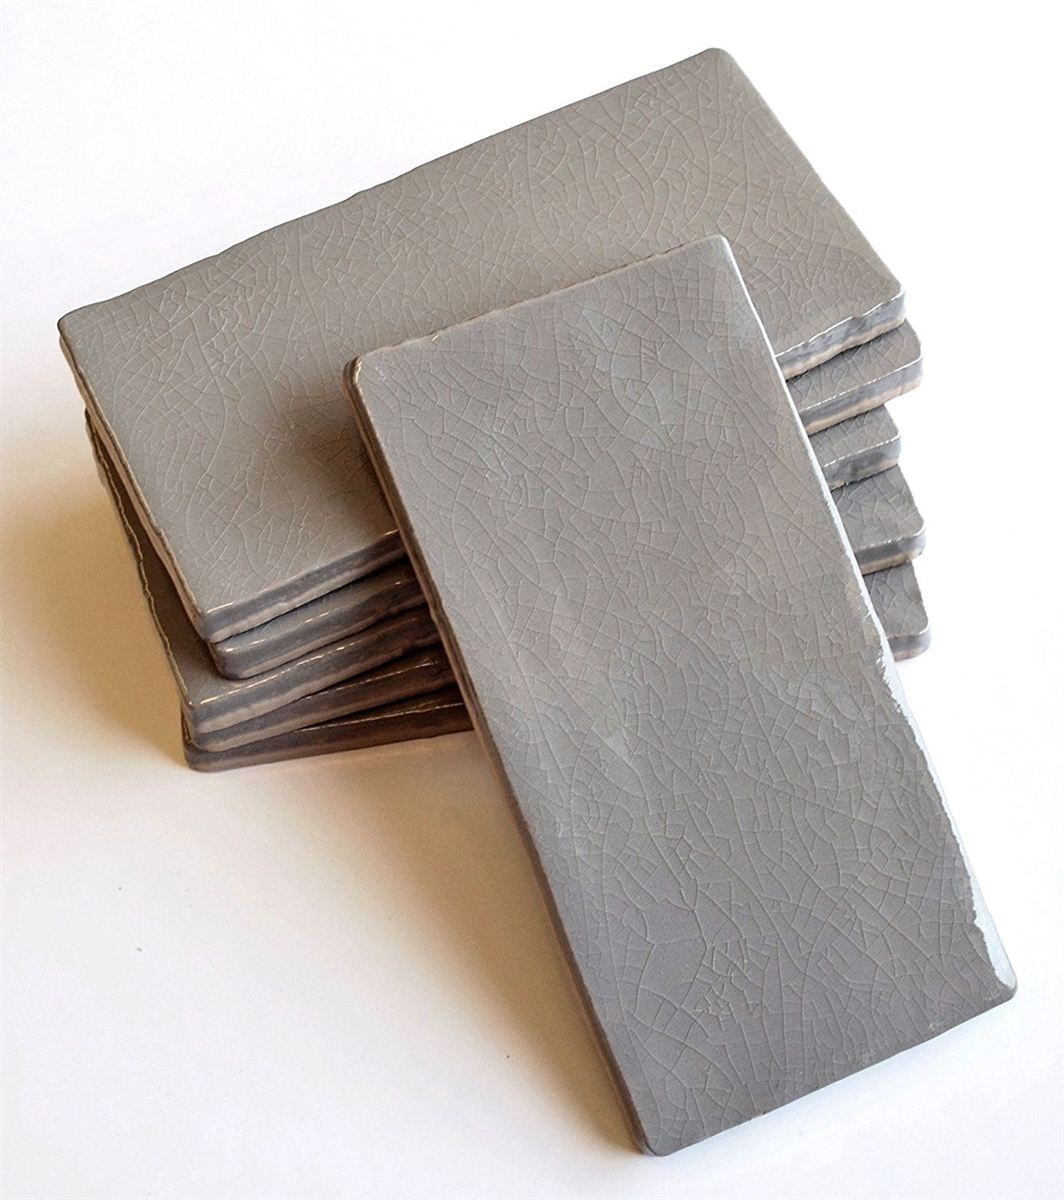 3x6 Gray Crackle Glaze Subway Ceramic Tile